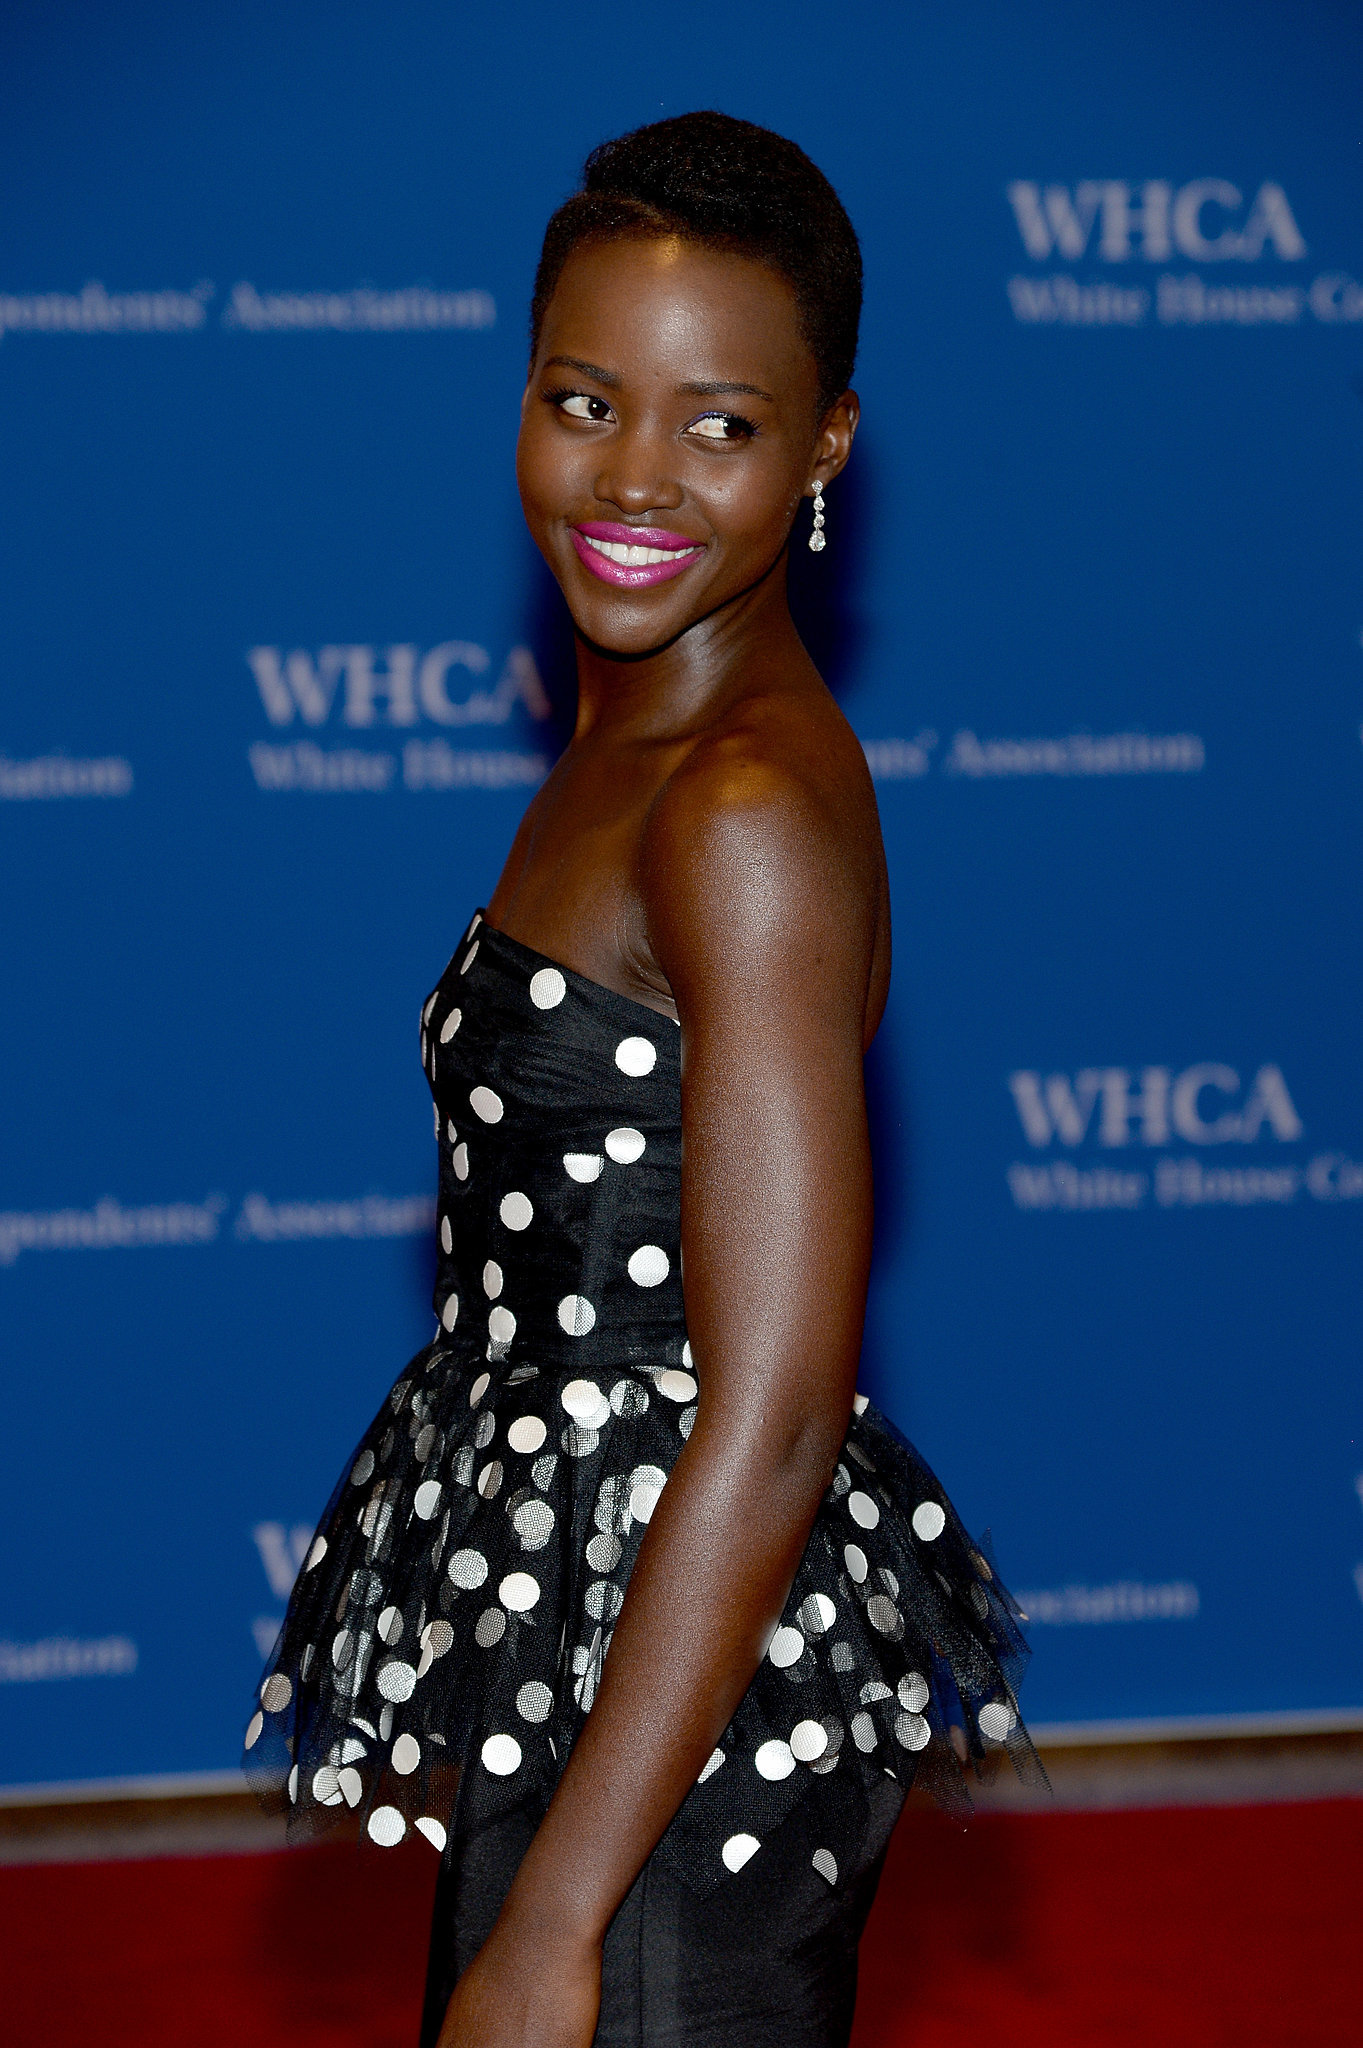 Stars Set DC Aglow at the White House Correspondents' Dinner